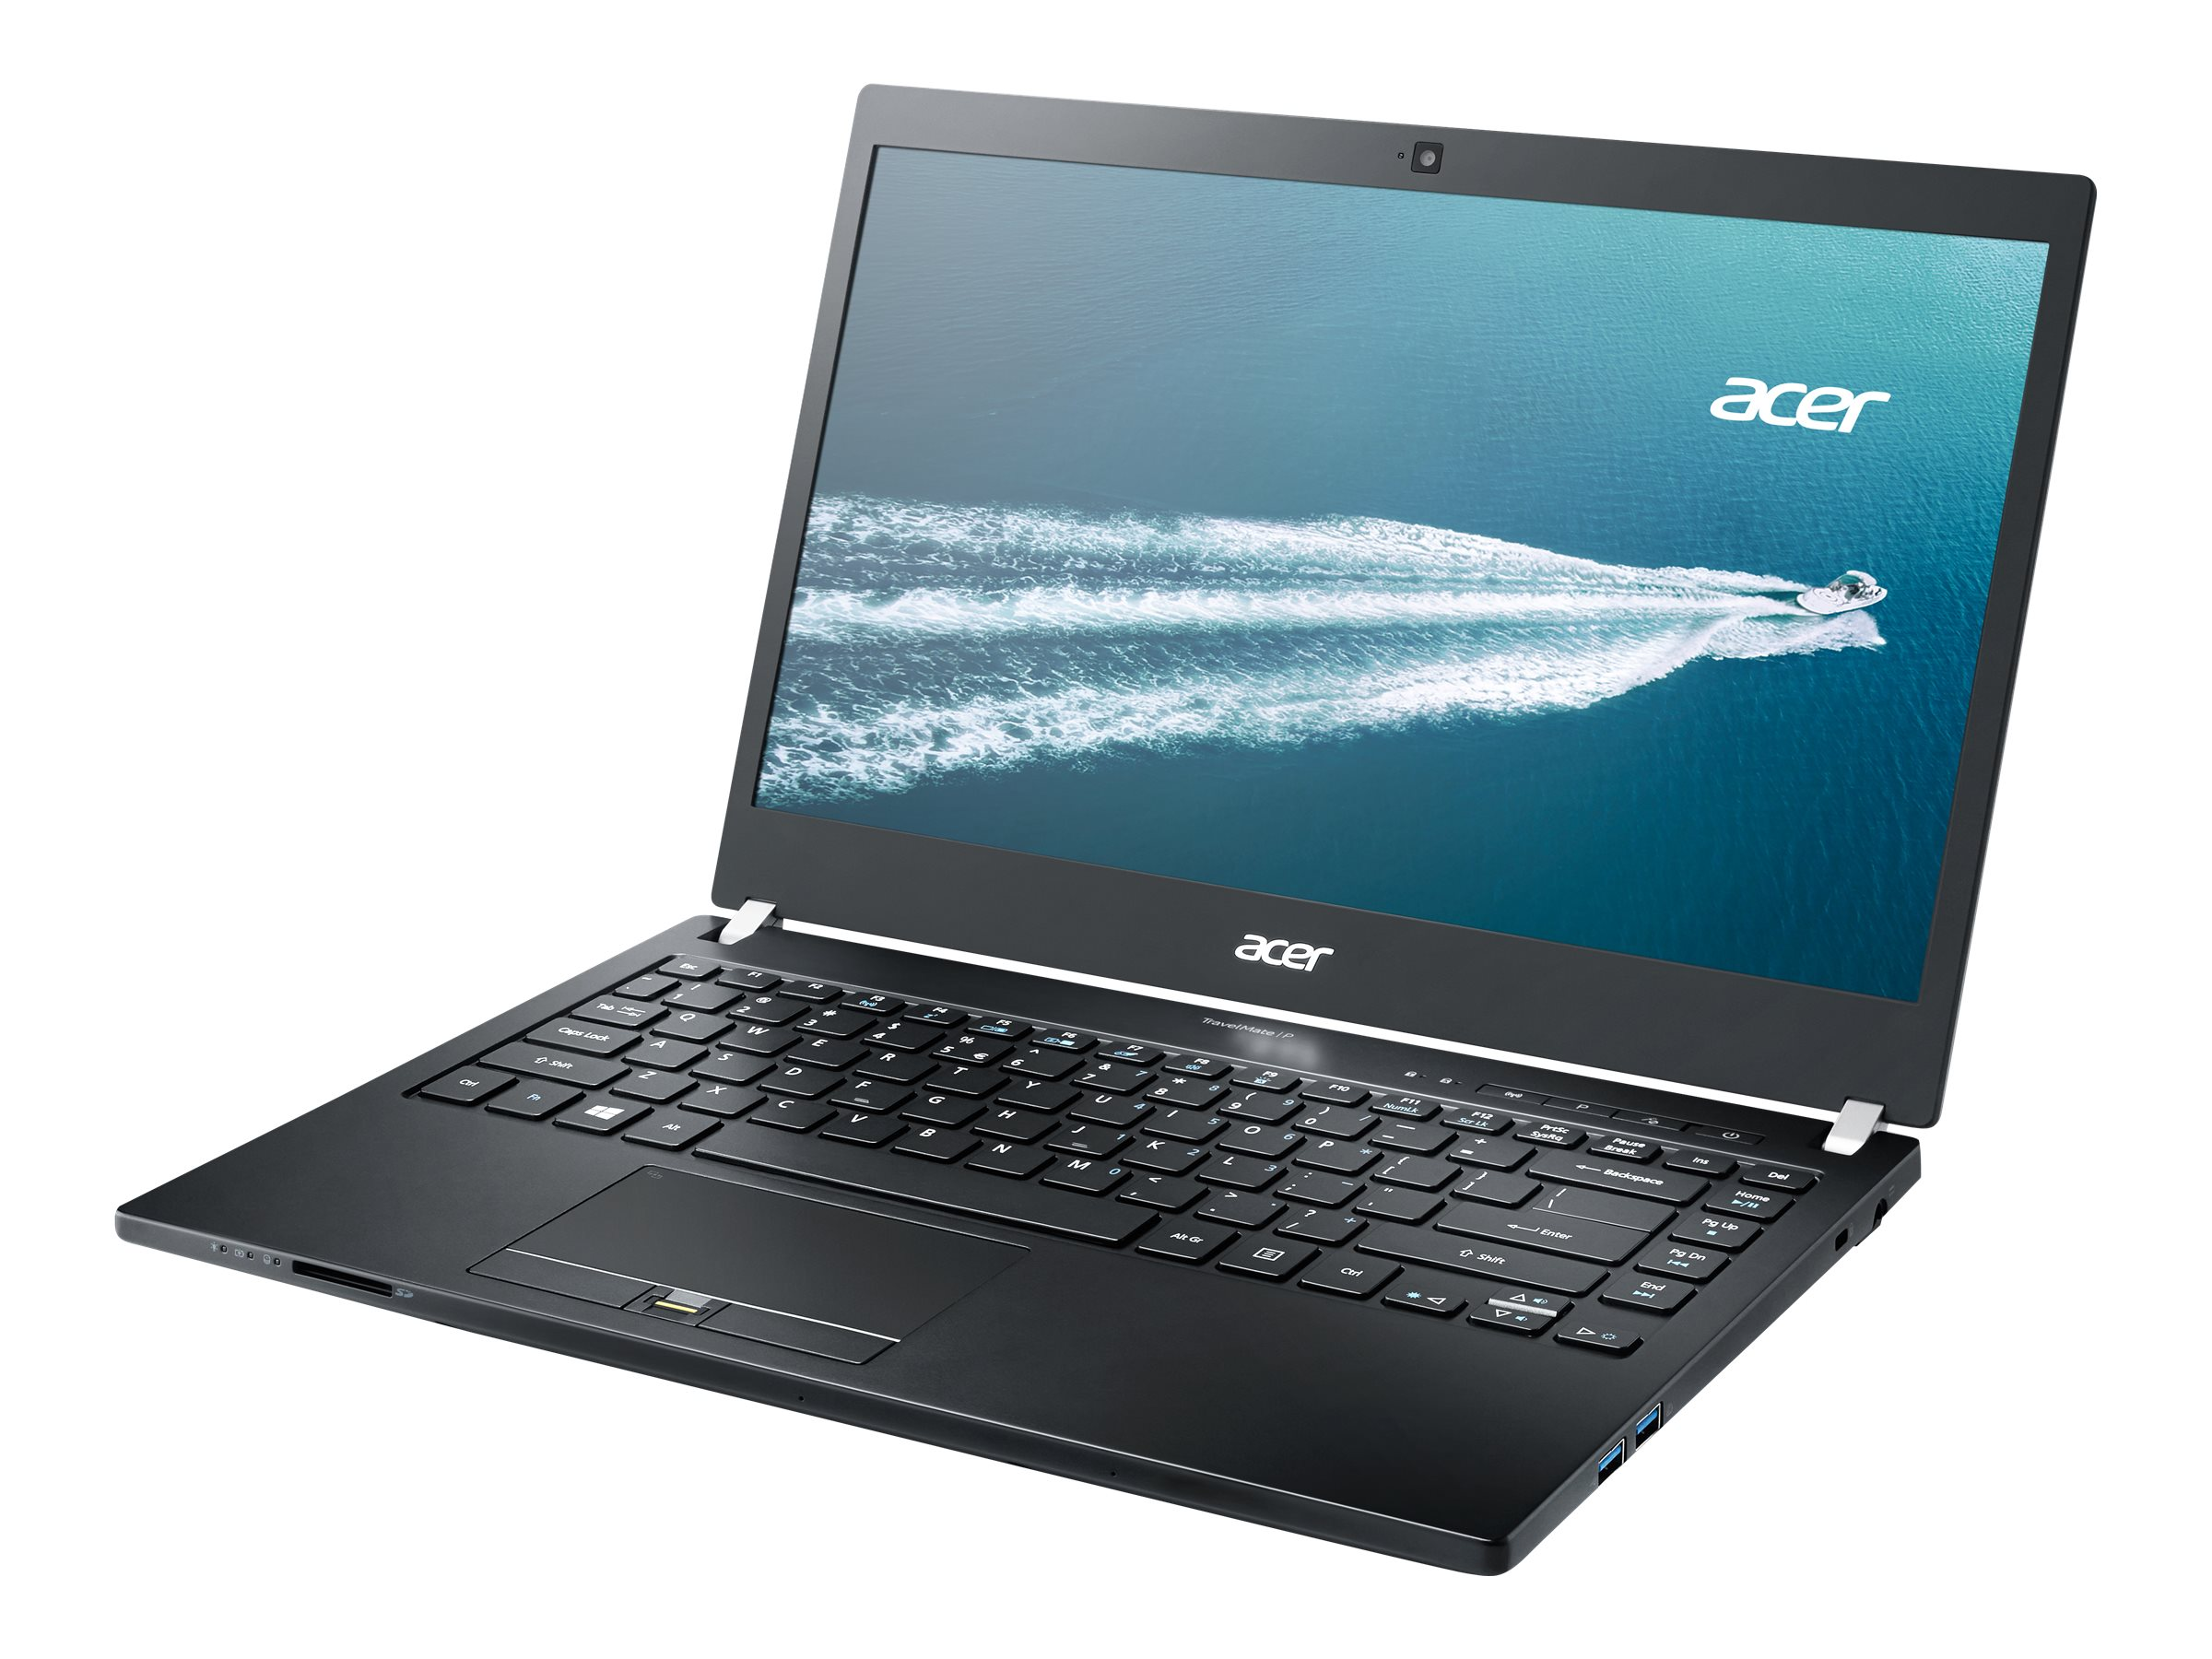 Acer TravelMate P645-M-3862 1.7GHz Core i3 14in display, NX.V8RAA.012